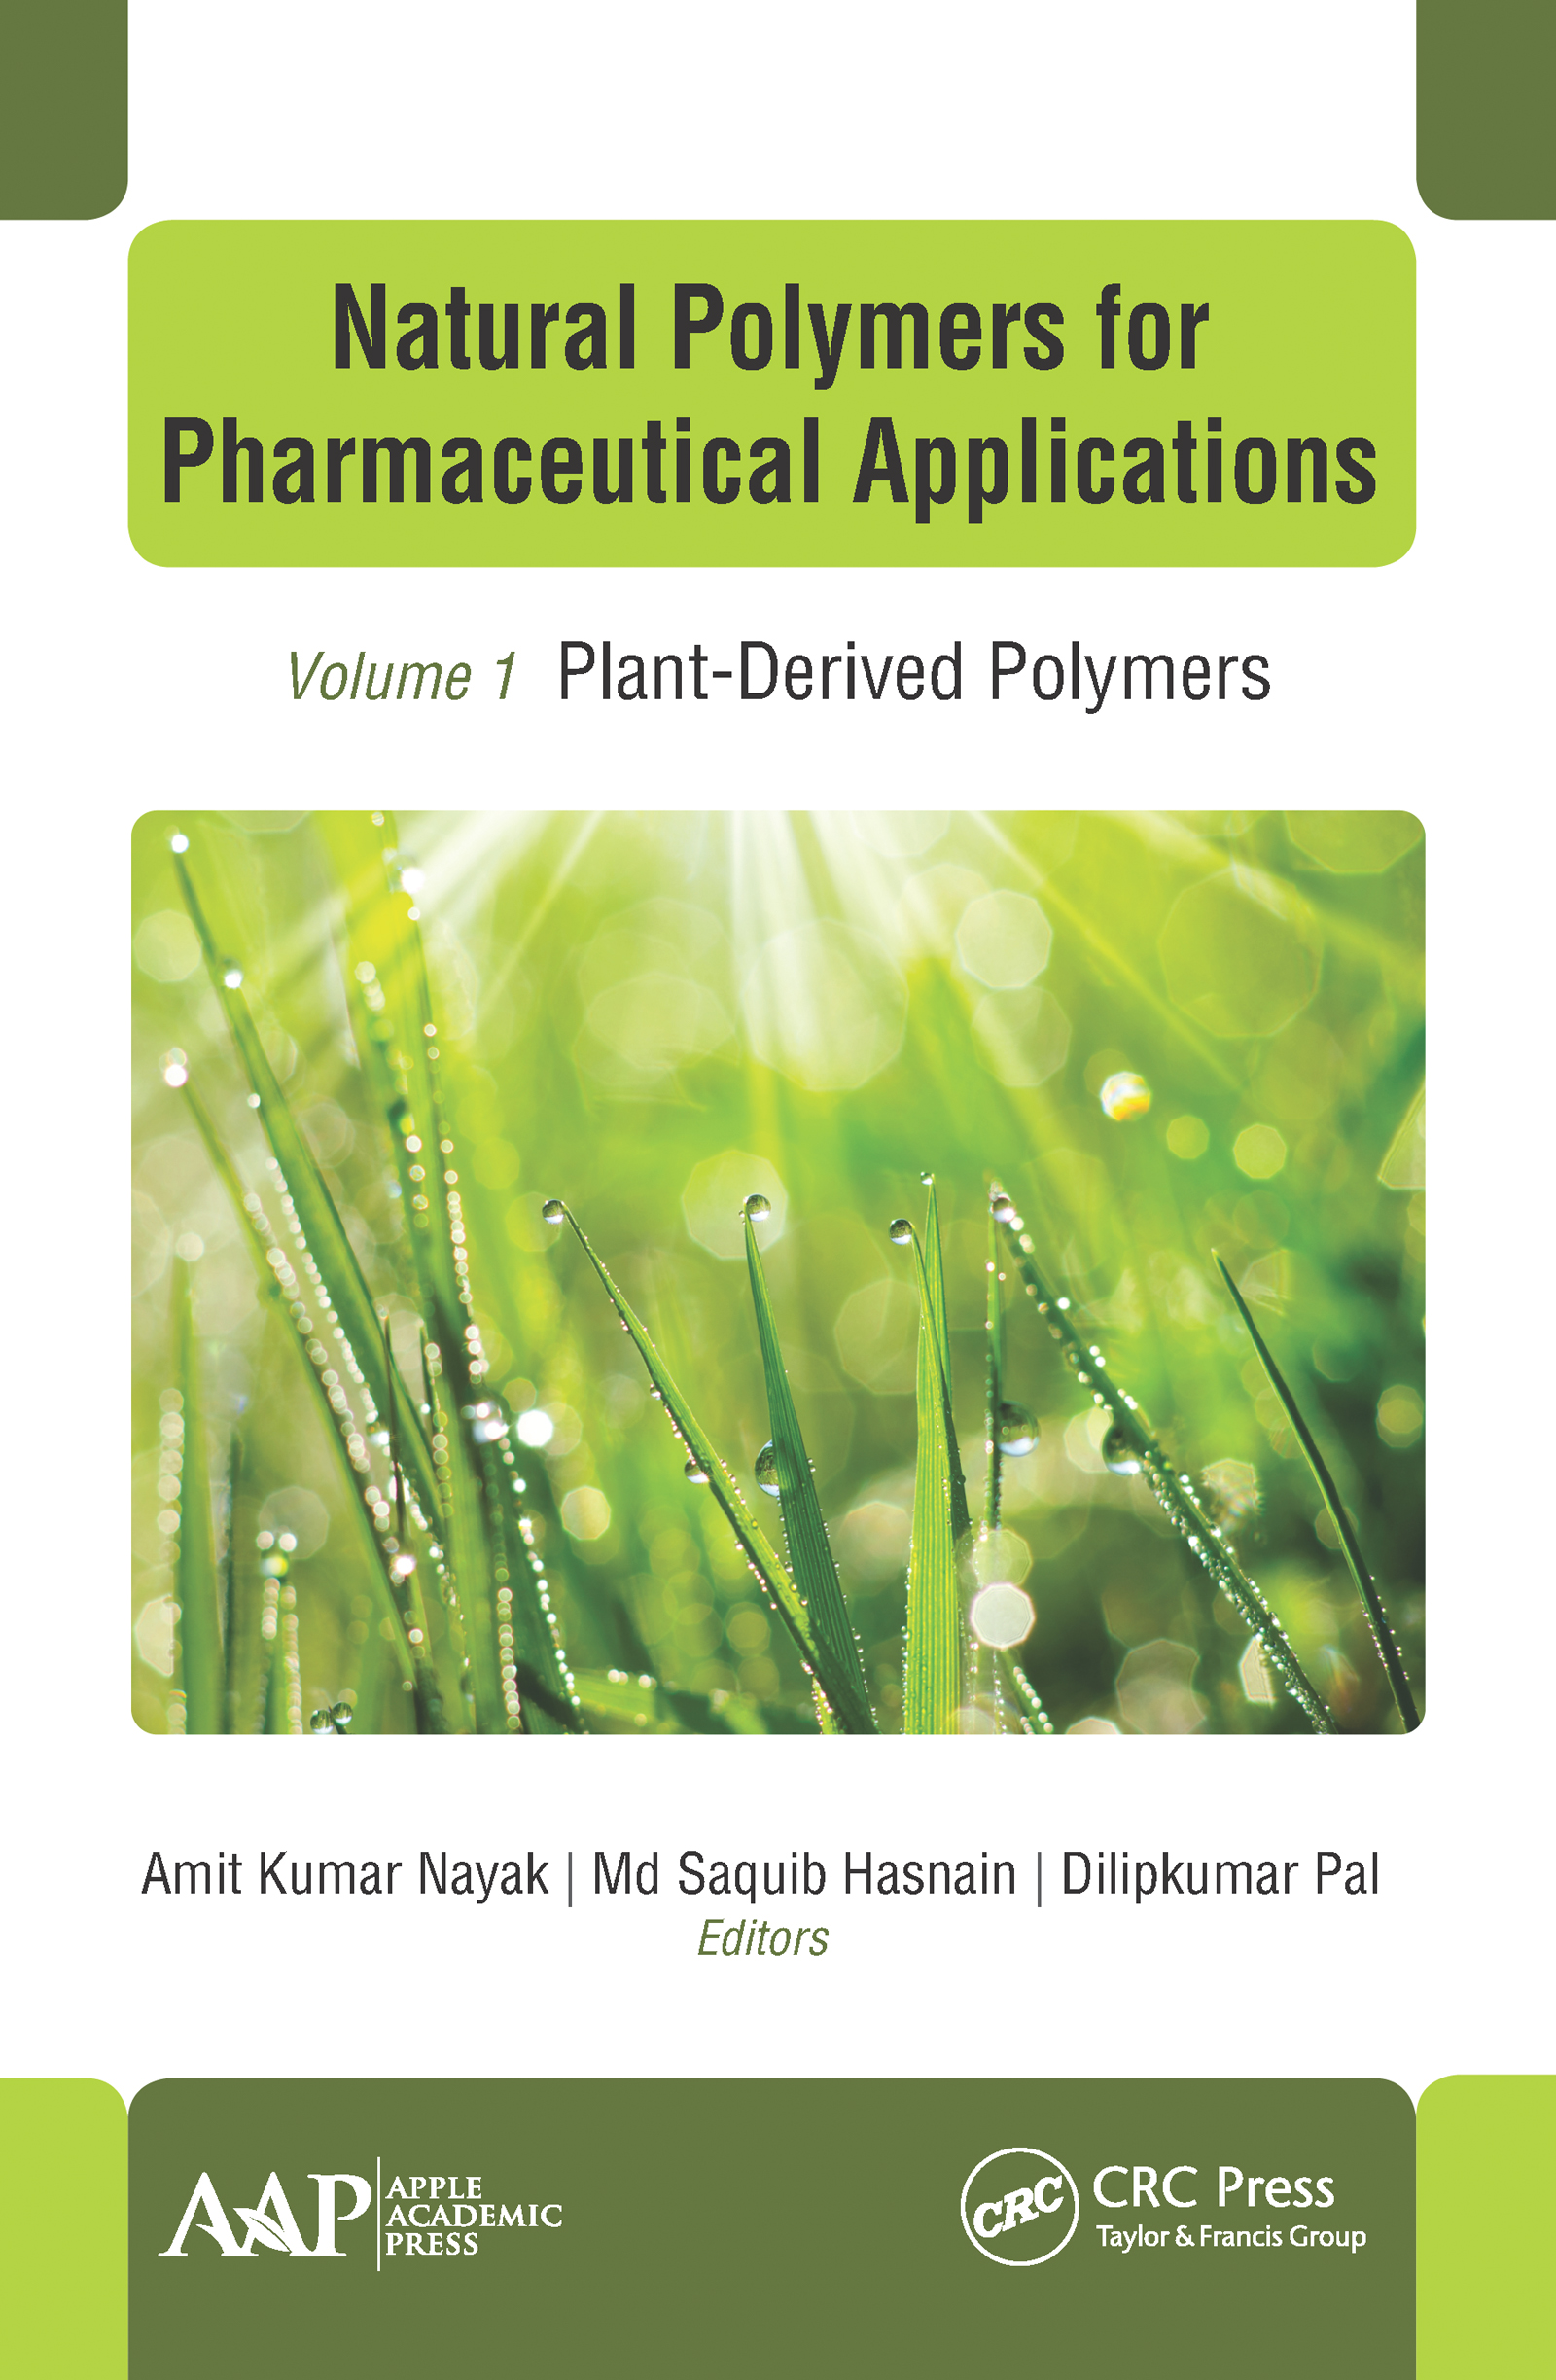 Natural Polymers for Pharmaceutical Applications